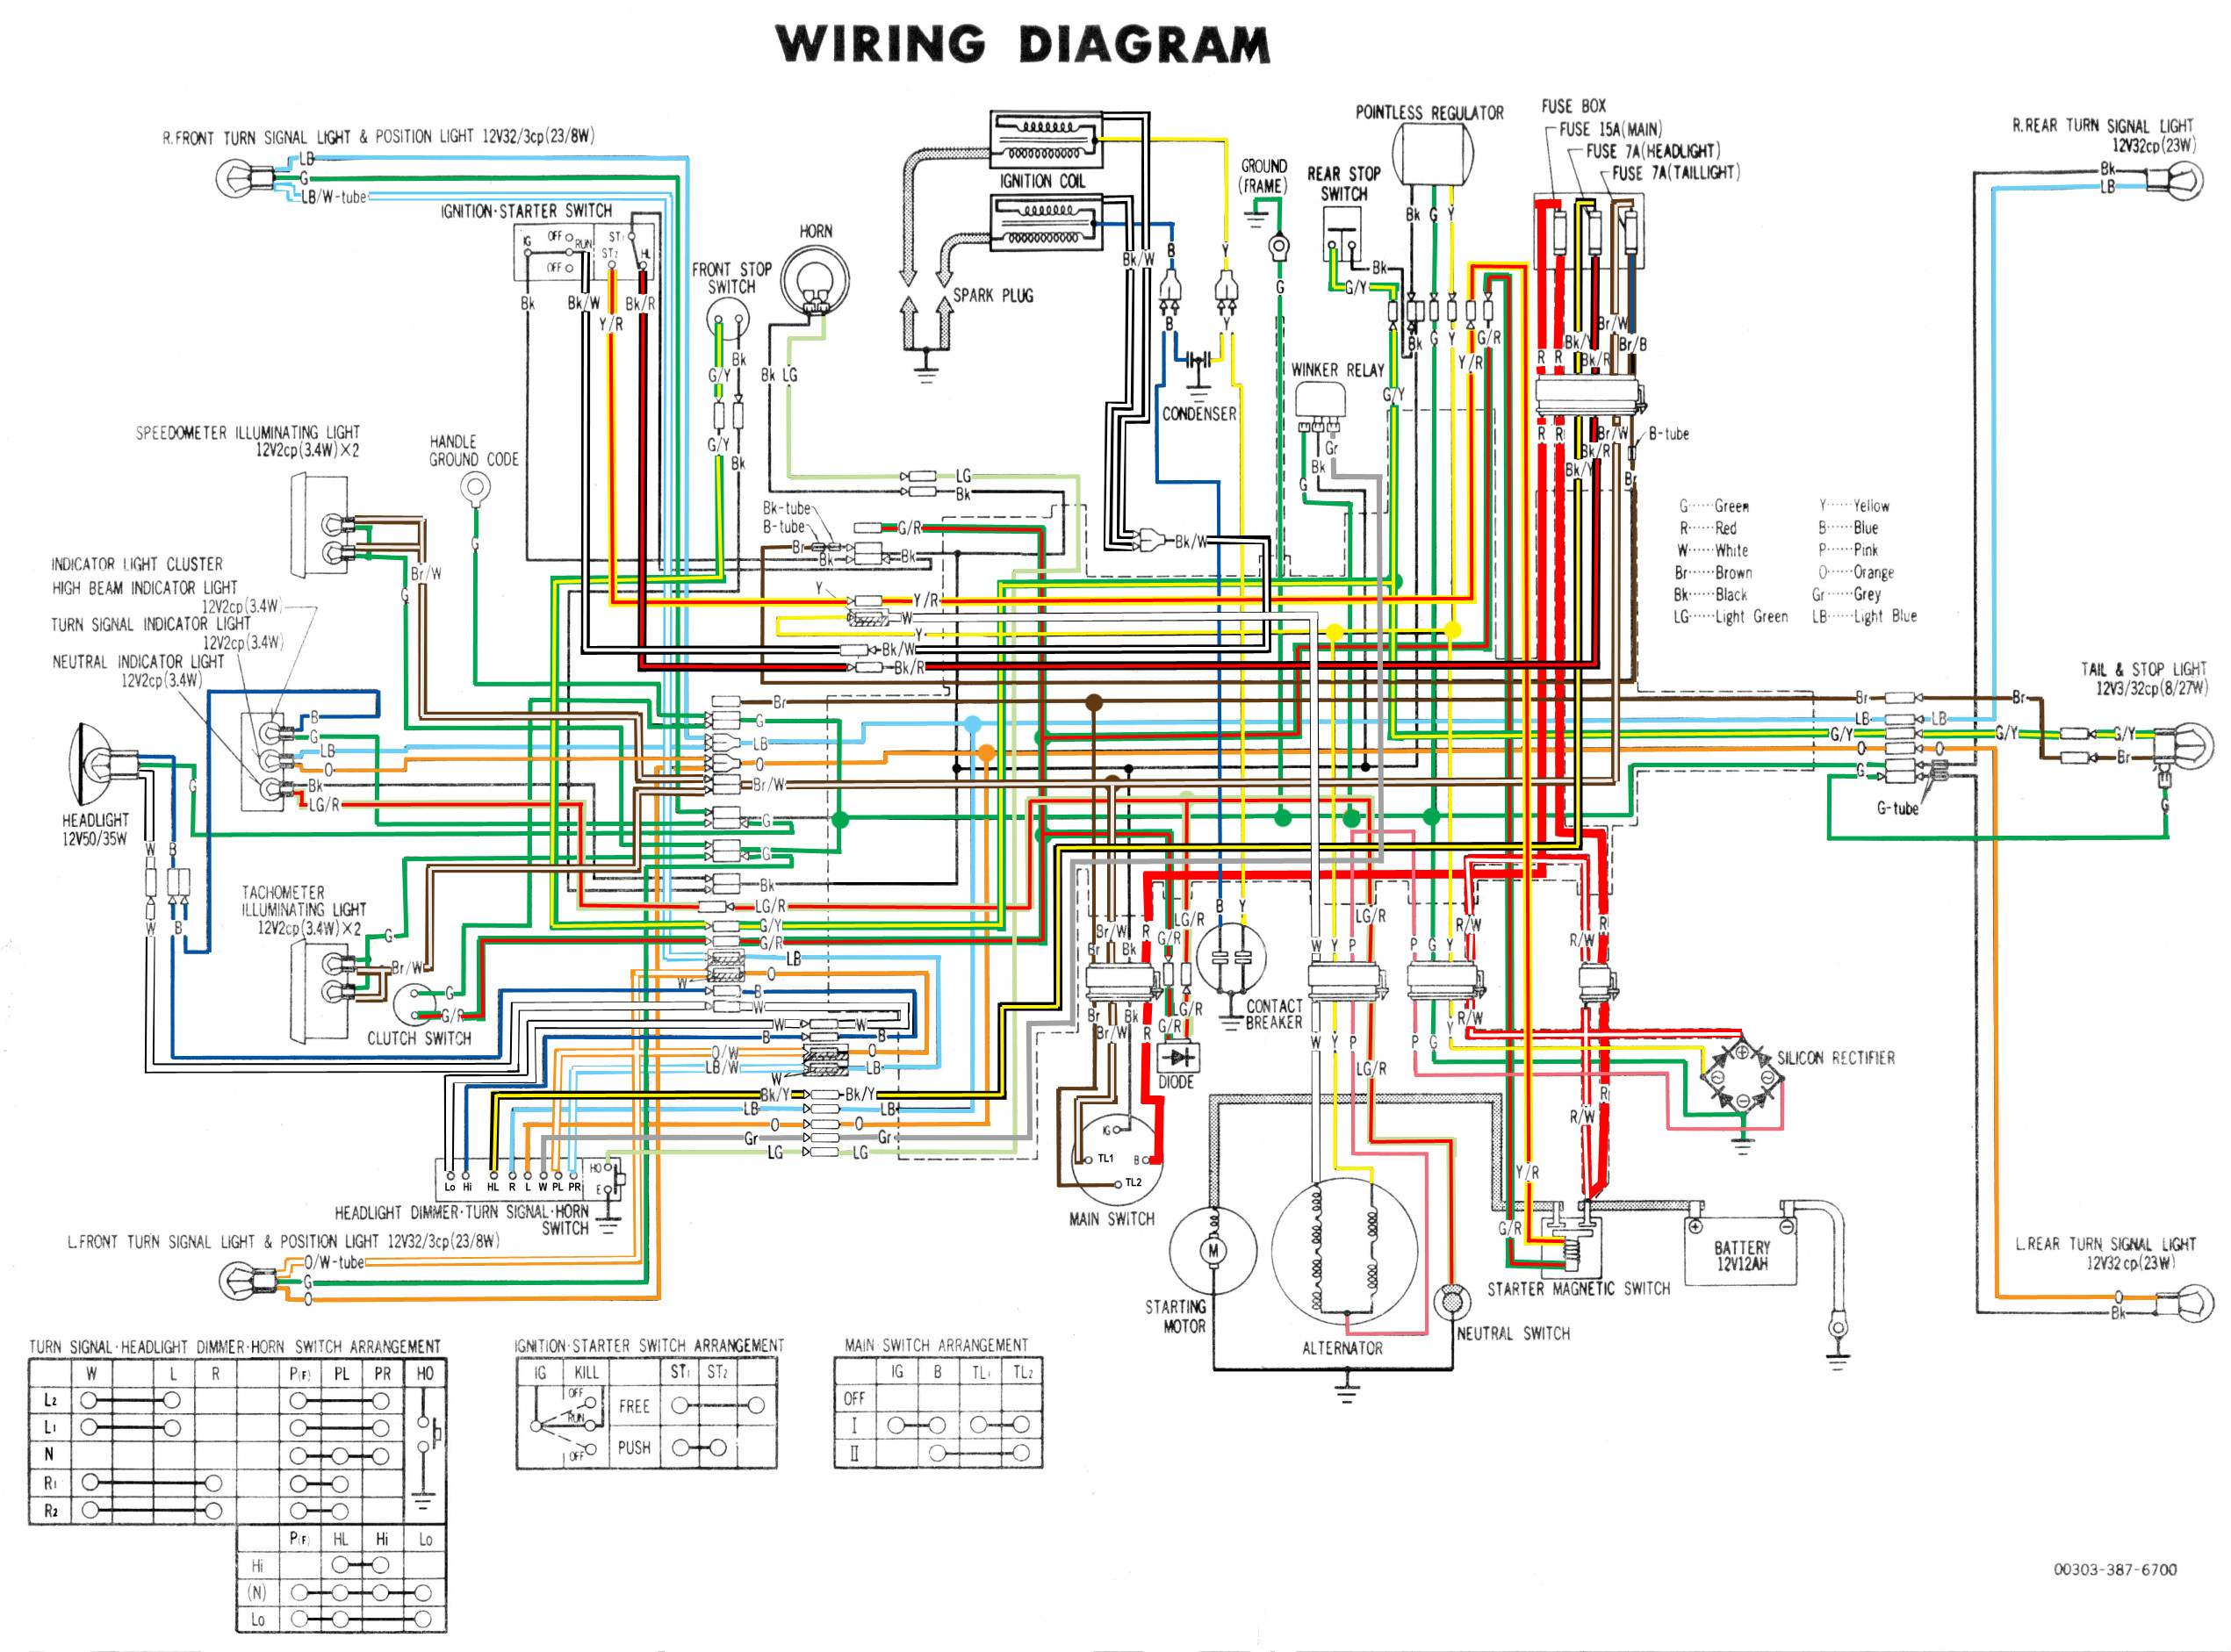 honda cb360 wiring cheap regulator/rectifier upgrade! - page 43 cb360 wiring diagram